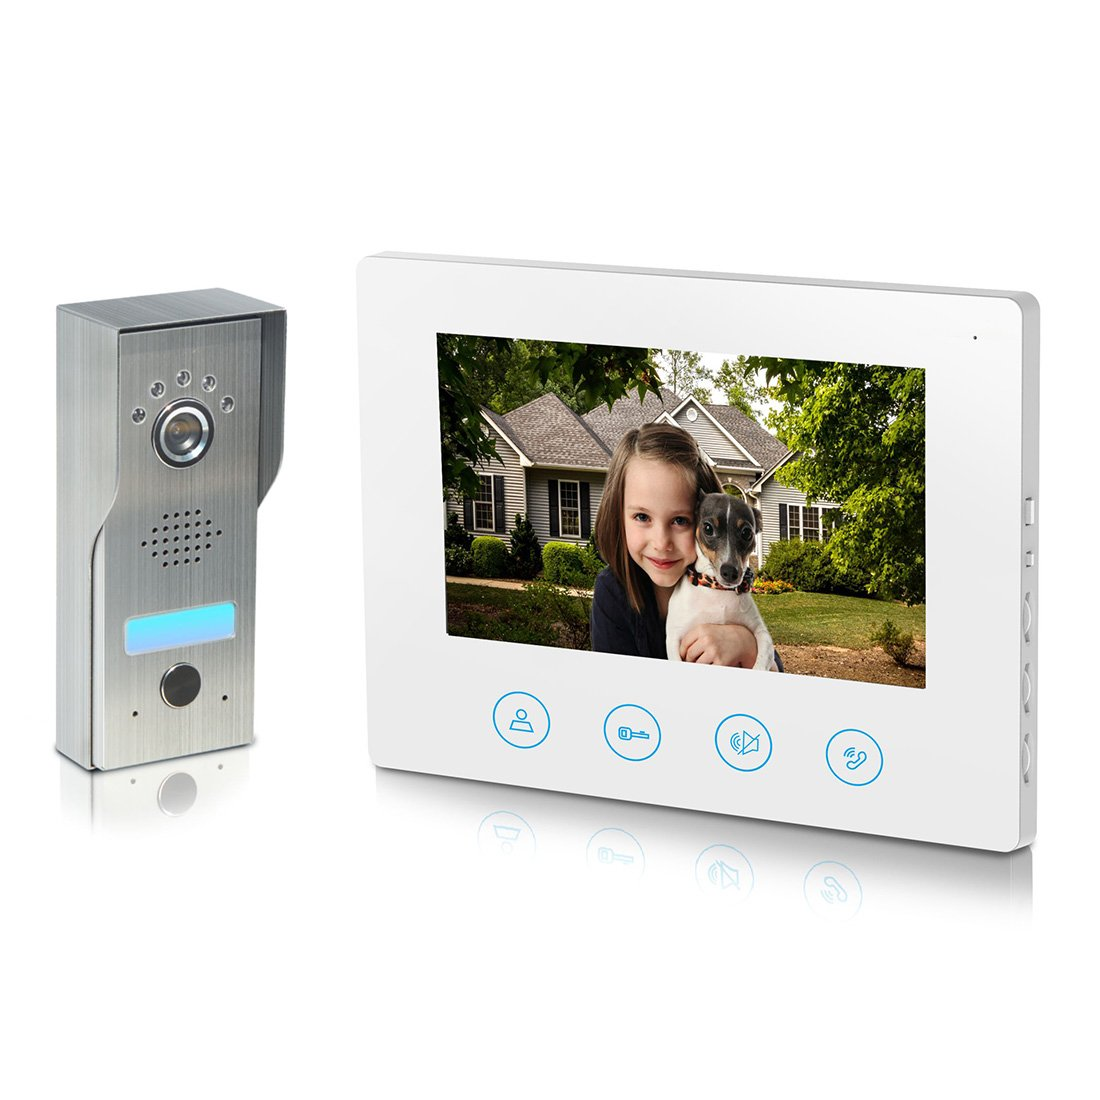 Metecsmart Video Doorbell 7inch Monitor - Stainless Steel Camera 4-wires IP44 water-proof Video Door Phone Intercom Kit 1-camera 1-monitor Night Vision Touch Button Color Screen - No Wi-Fi & APP White